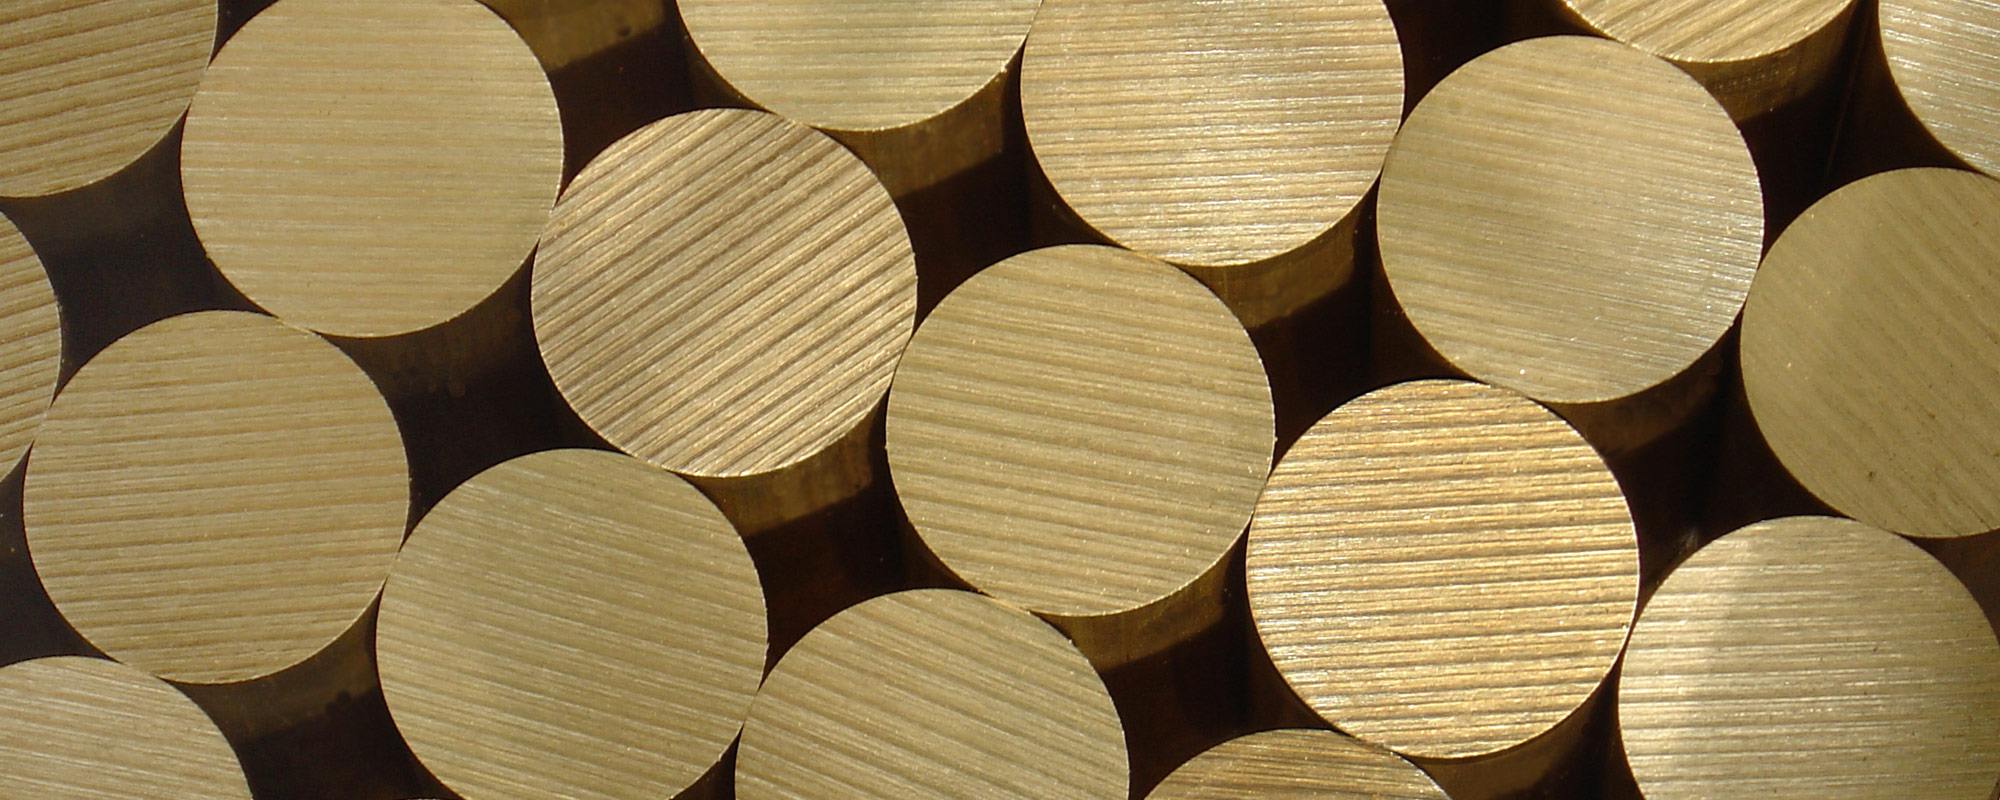 Phosphor Bronze Delivered Nationwide By West Yorkshire